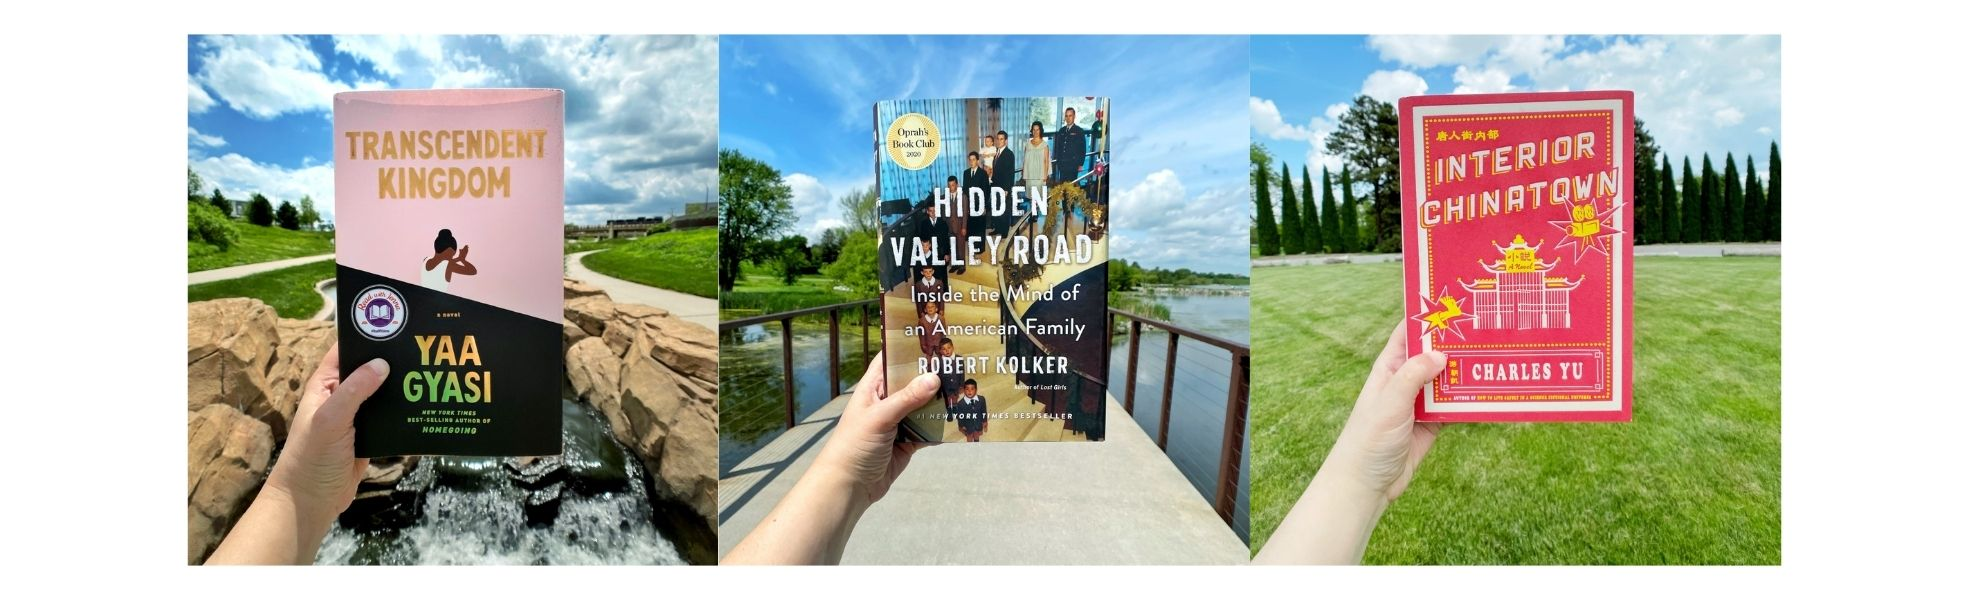 book cover images held up in front of scenic backdrops